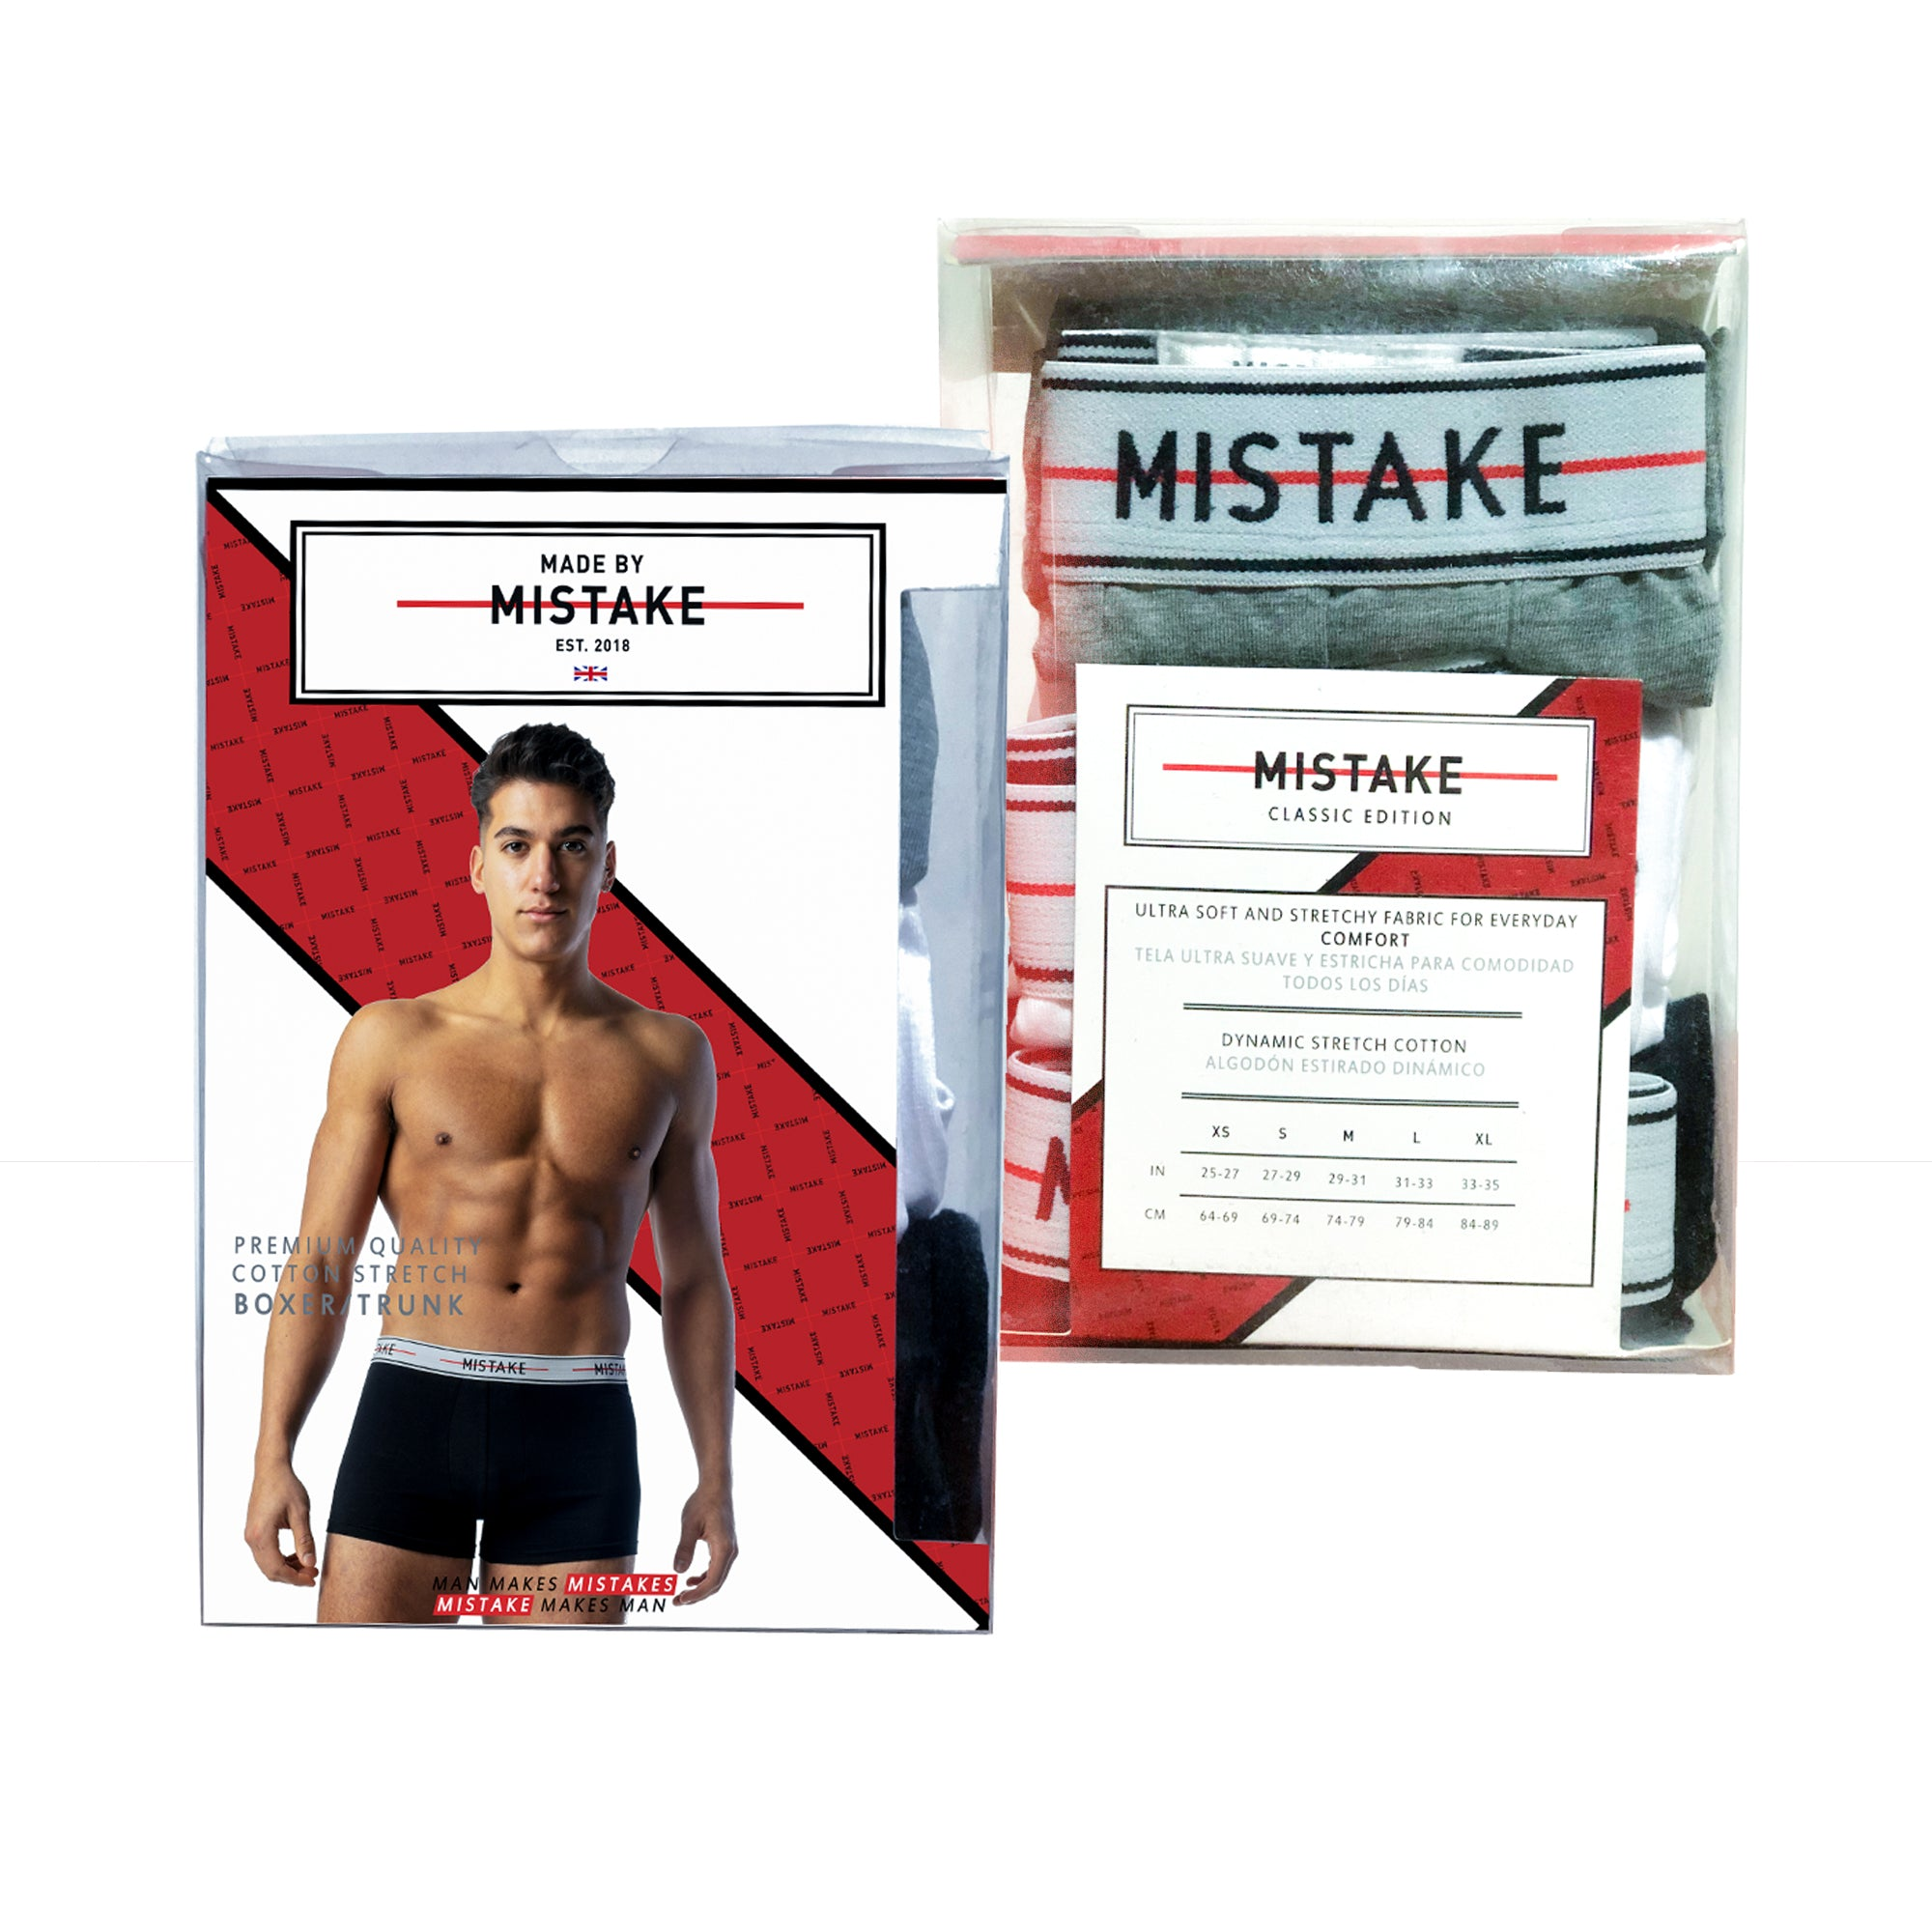 Mistake Classic Edition Boxer Shorts (Navy, Grey, White)